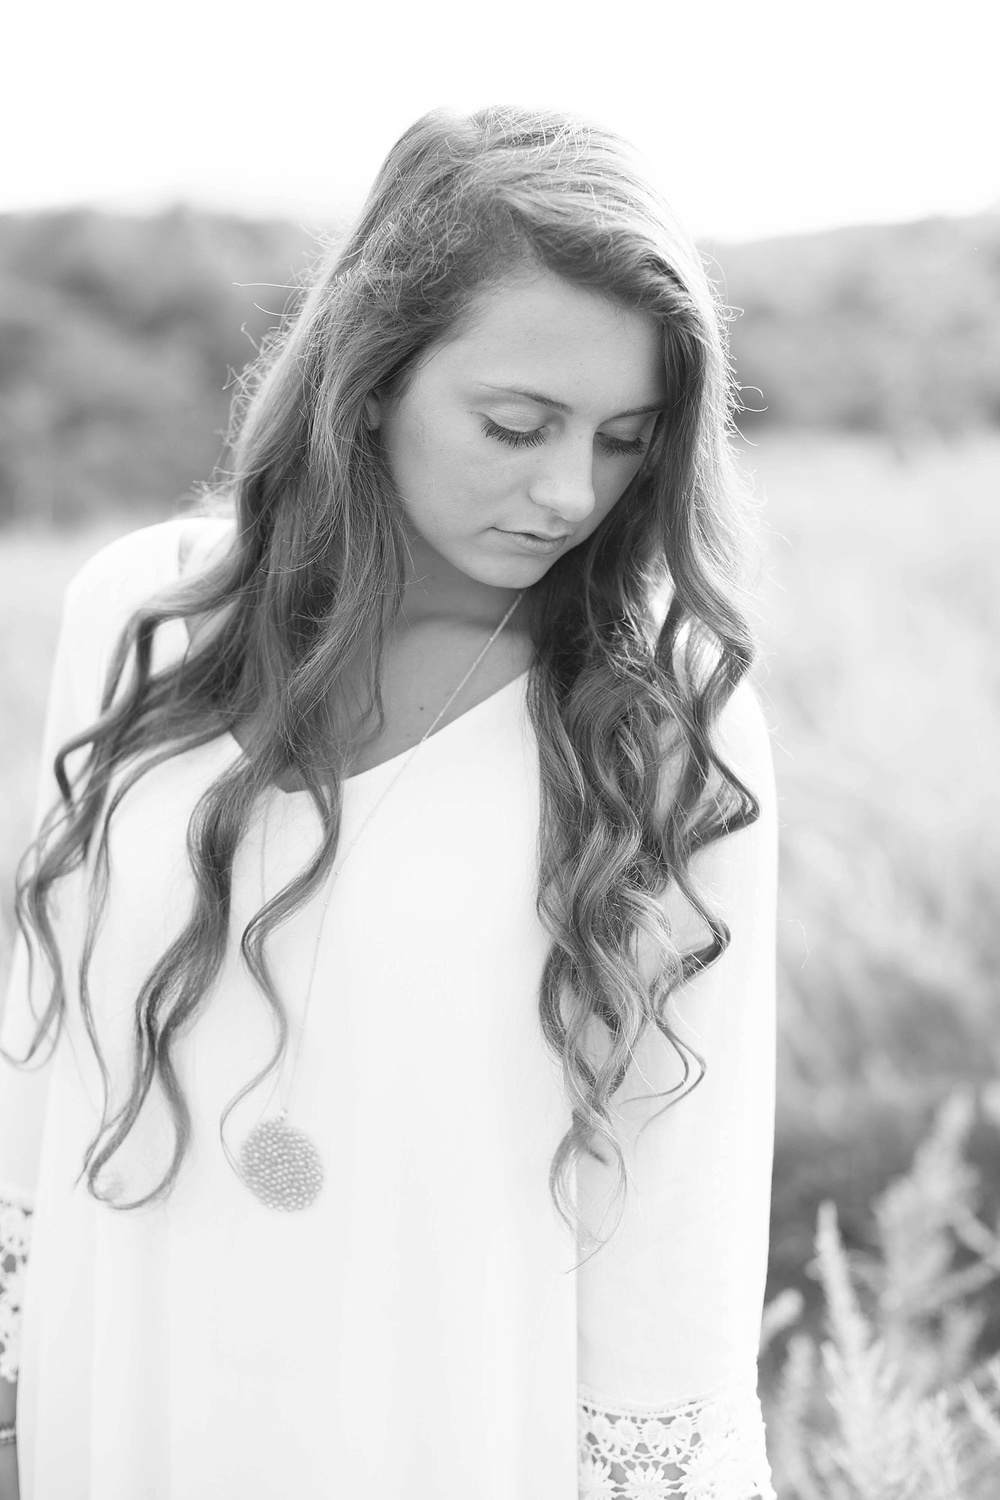 Senior Portraits | Ashley Powell | Roanoke, VA Photographer